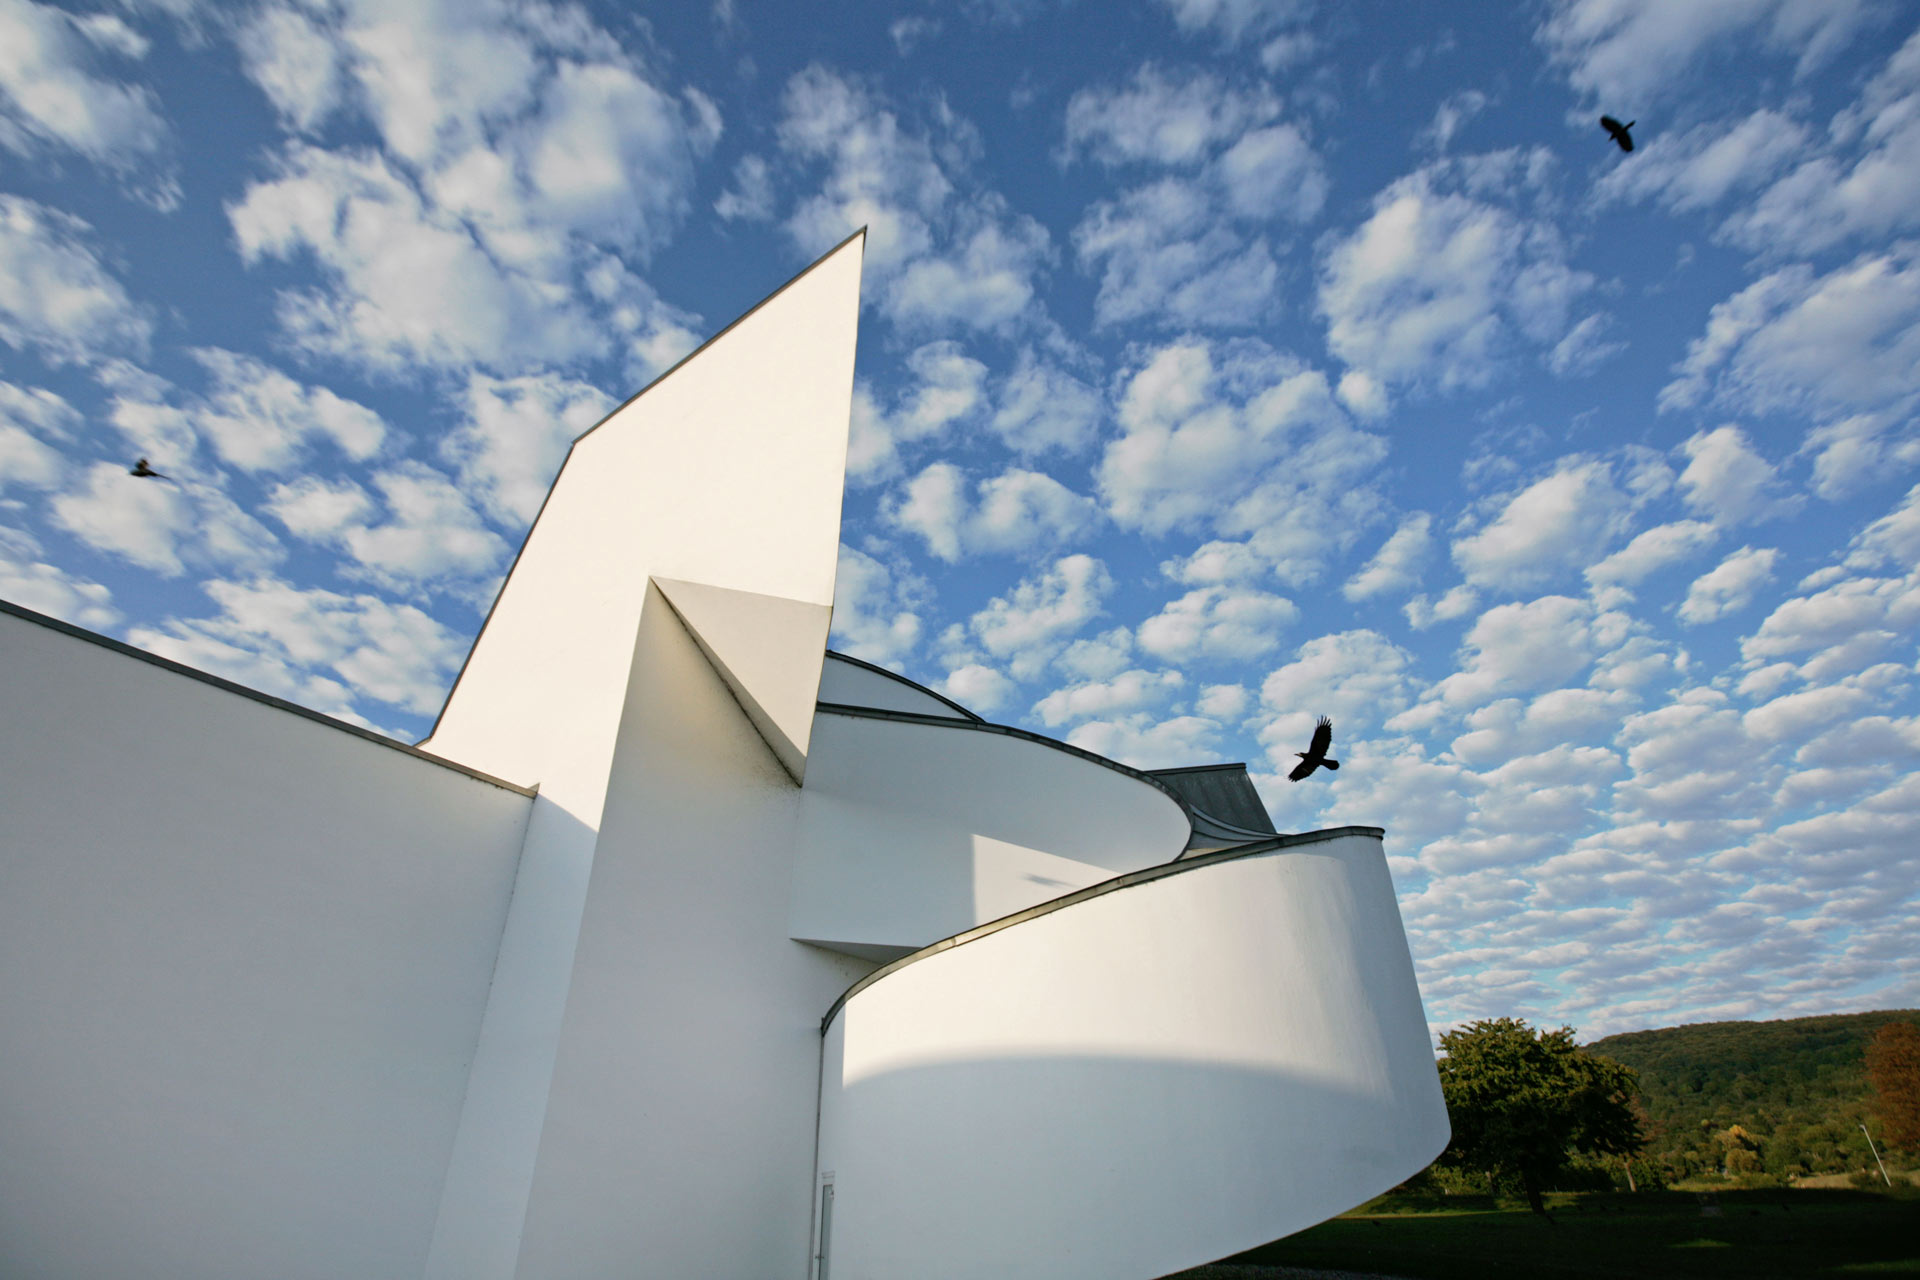 The Vitra Design Museum built in 1989 by Frank Gehry which was the first public building on the campus as well as the architect's first building in Europe.